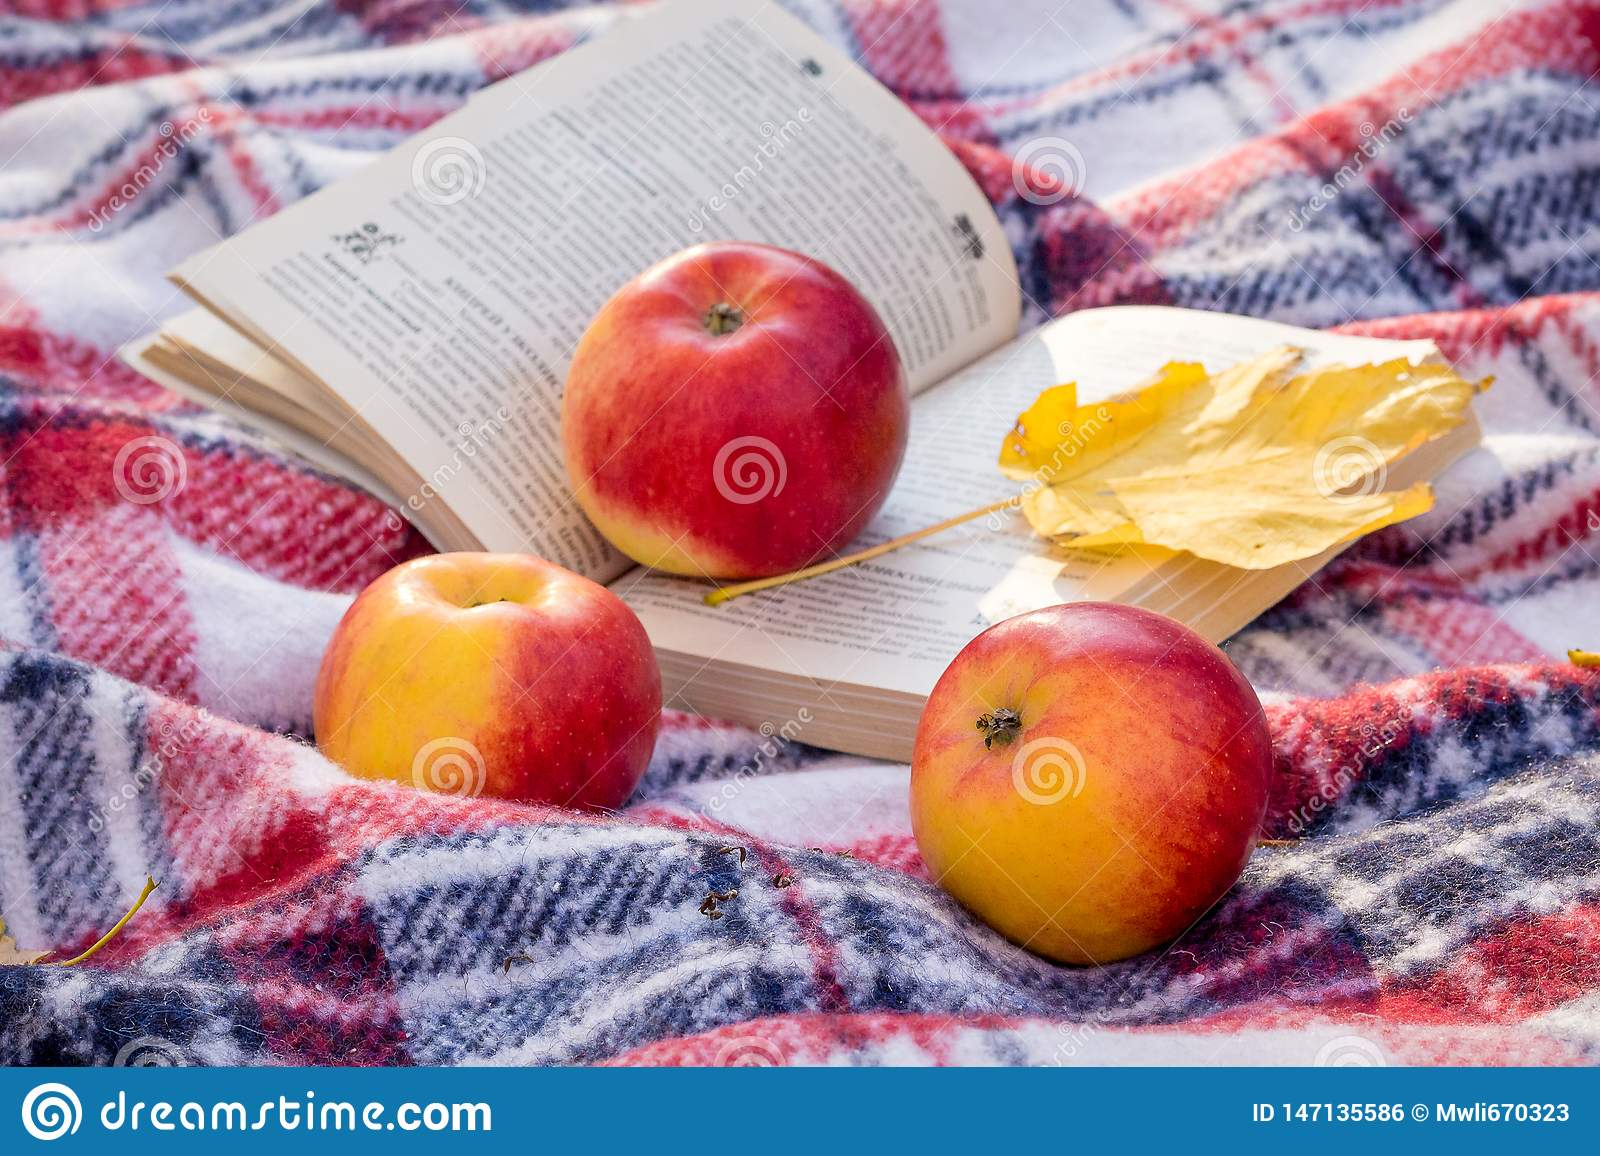 Red Juicy Apples And A Yellow Maple Leaf Near An Open Book